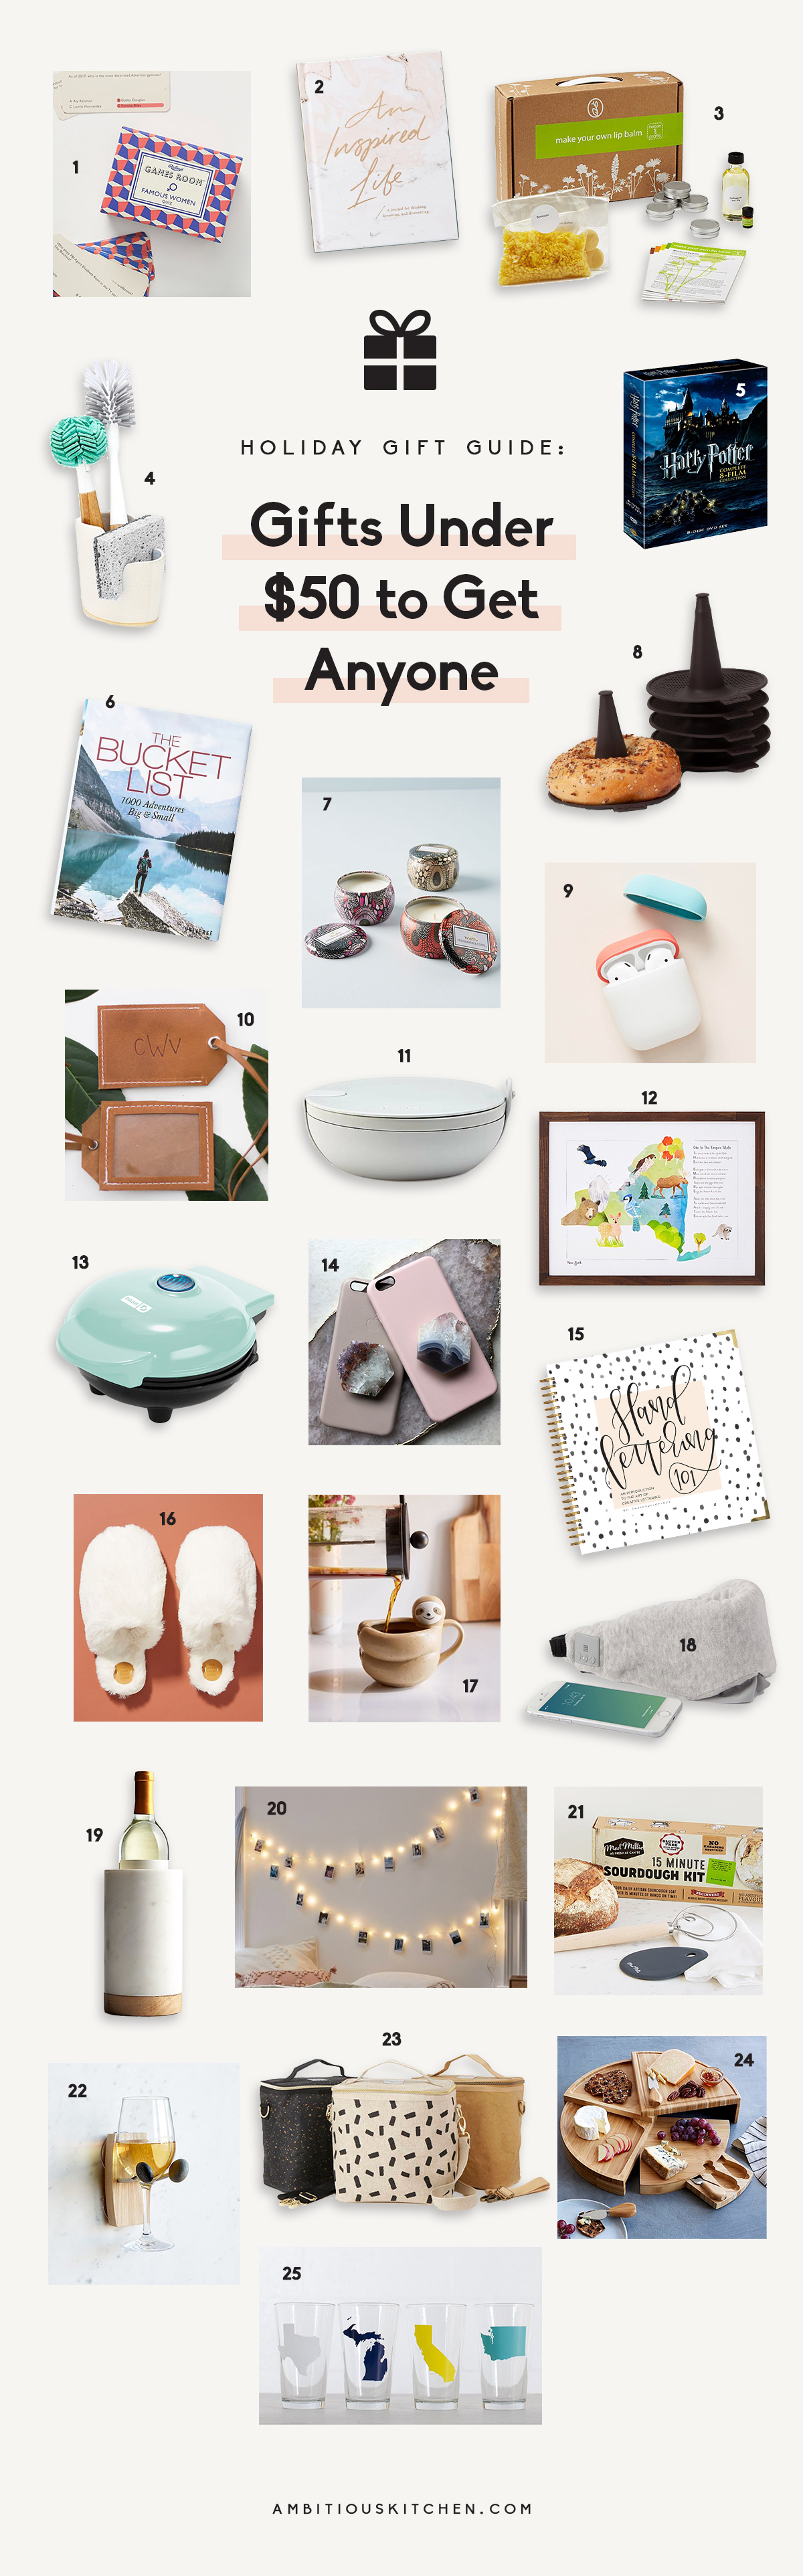 collage of gifts under $50 to get anyone